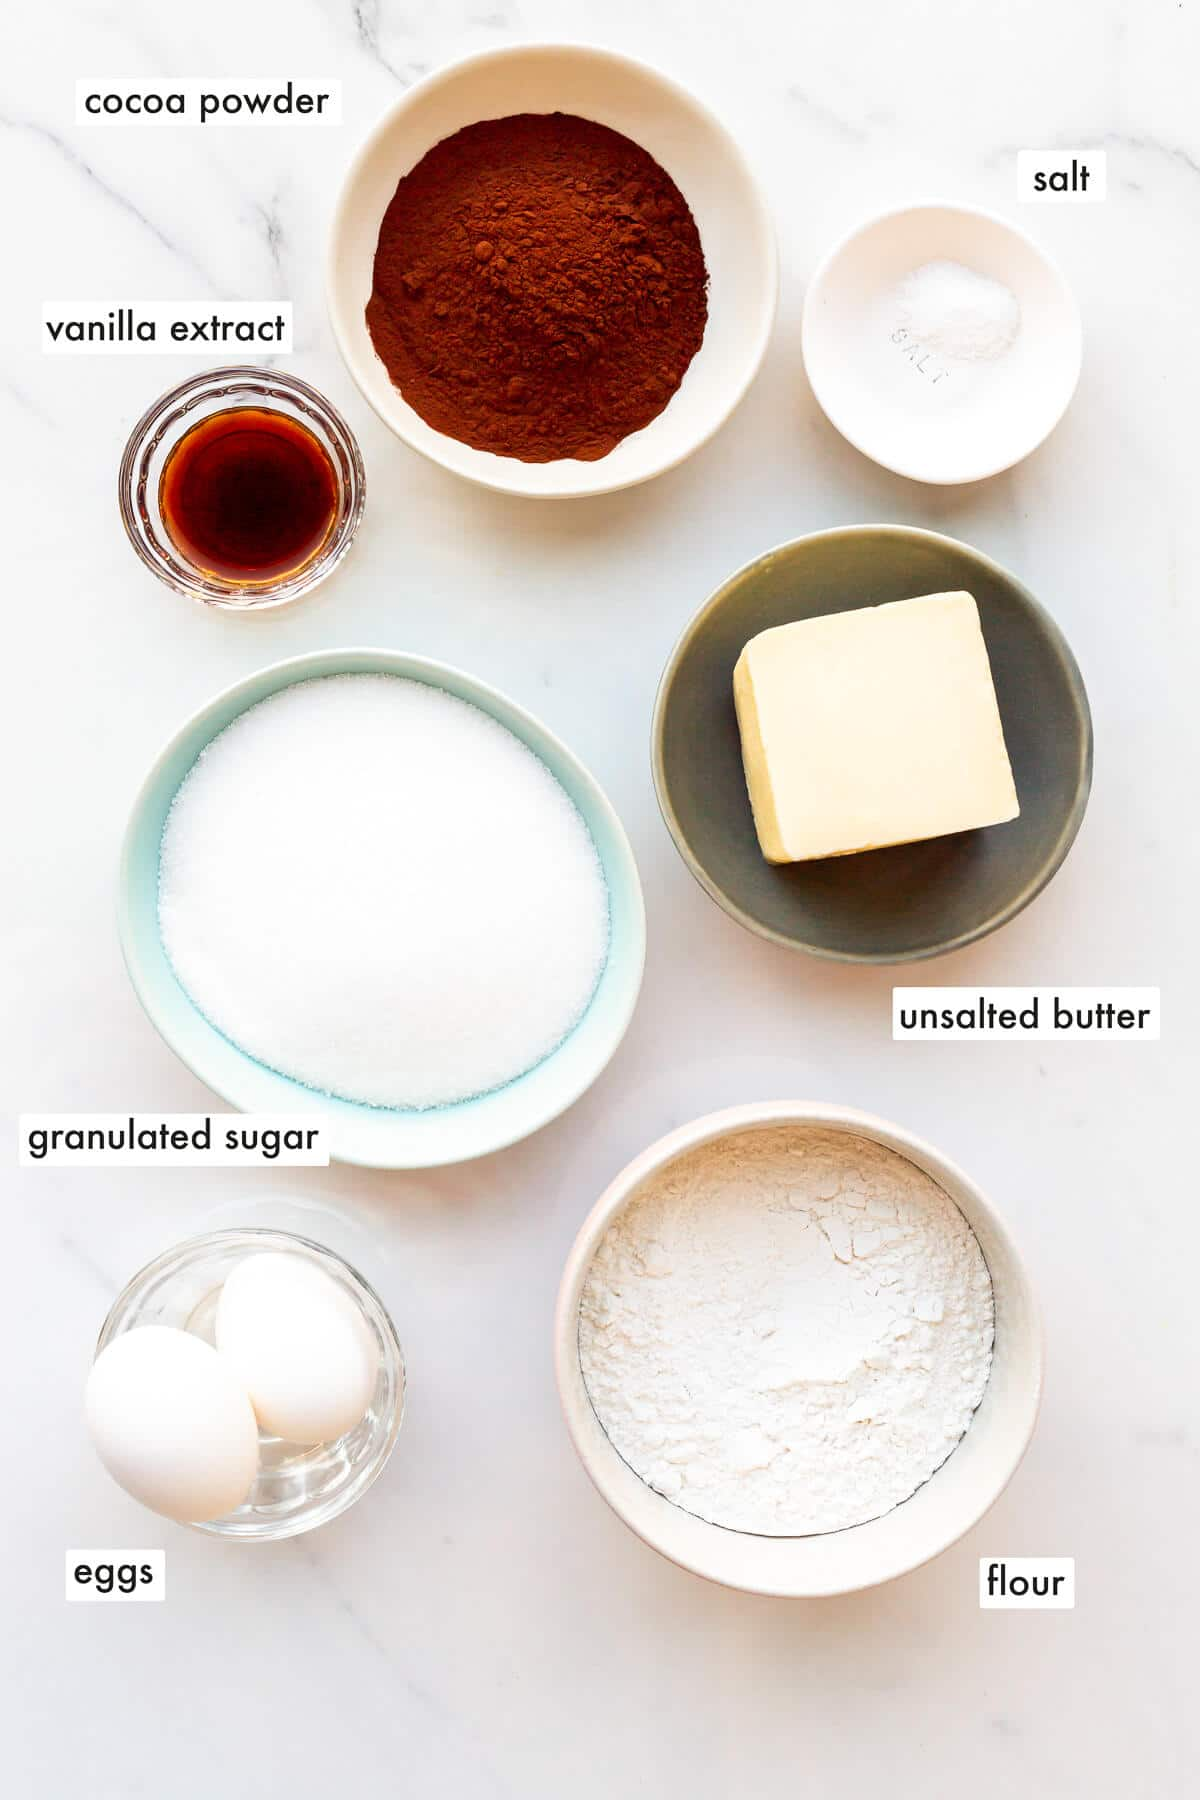 Ingredients to make pinwheel cookies measured out to make the cookie doughs.